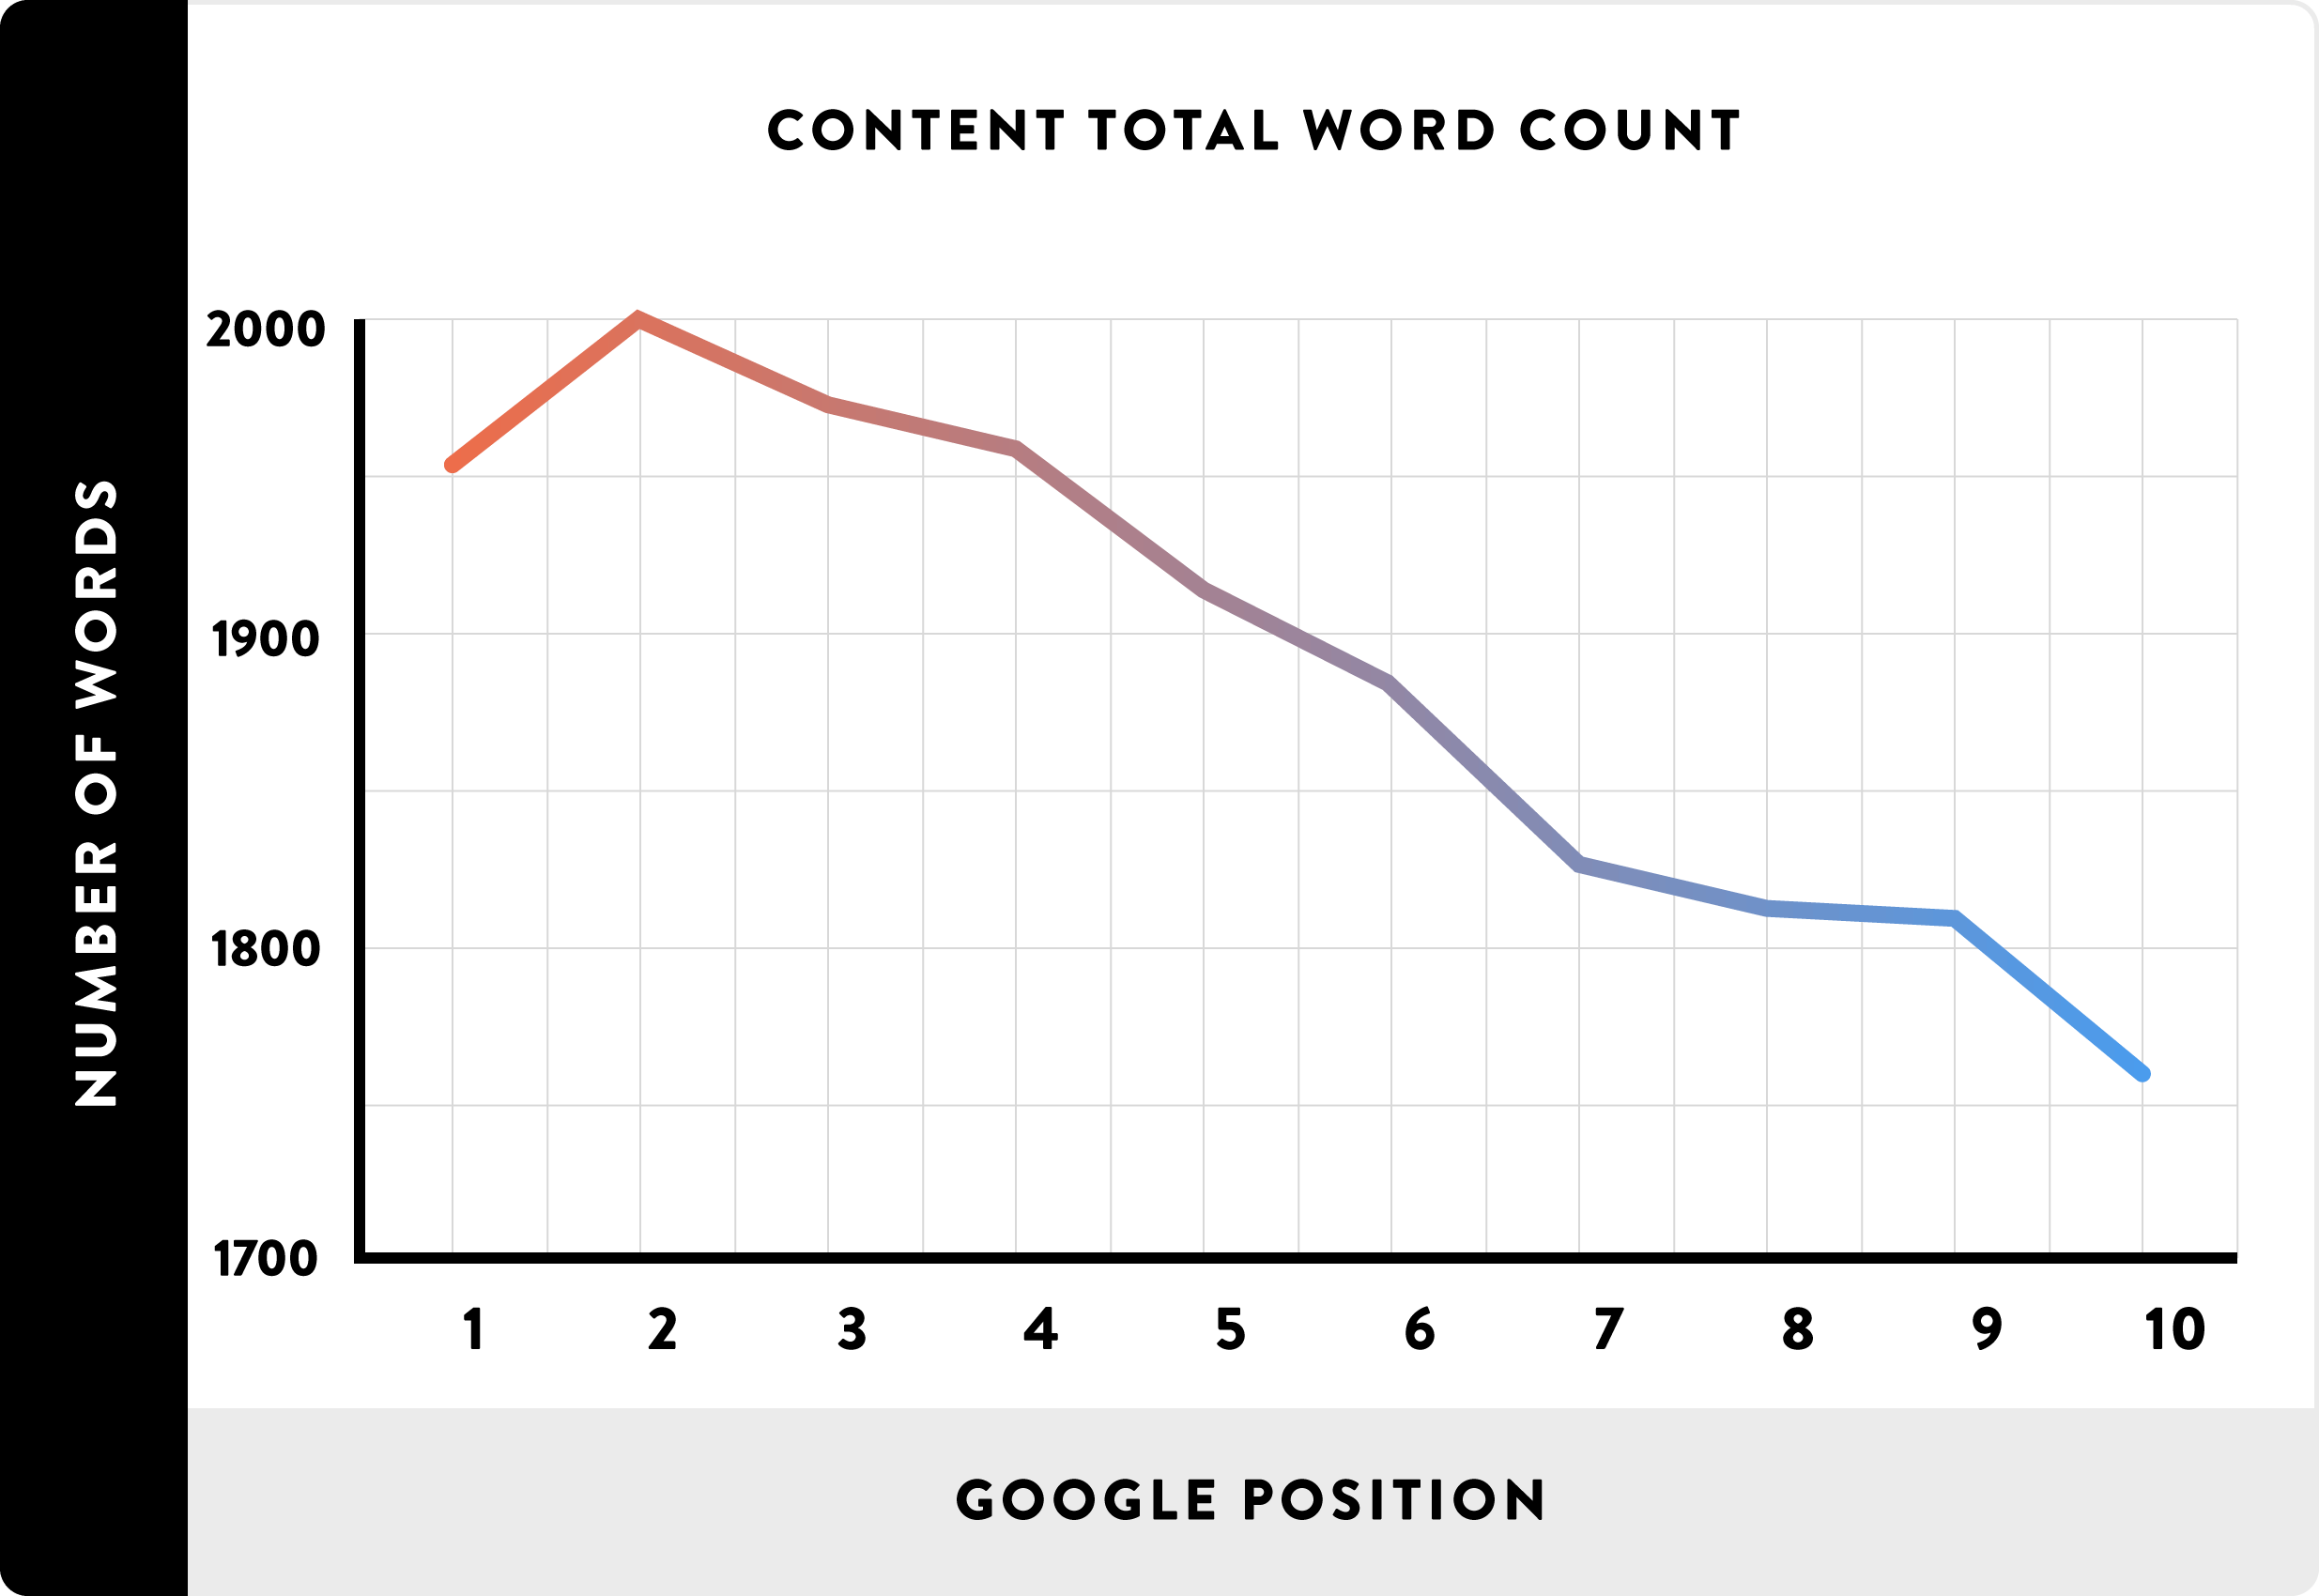 Website optimization - How lenght of content influence on Google position